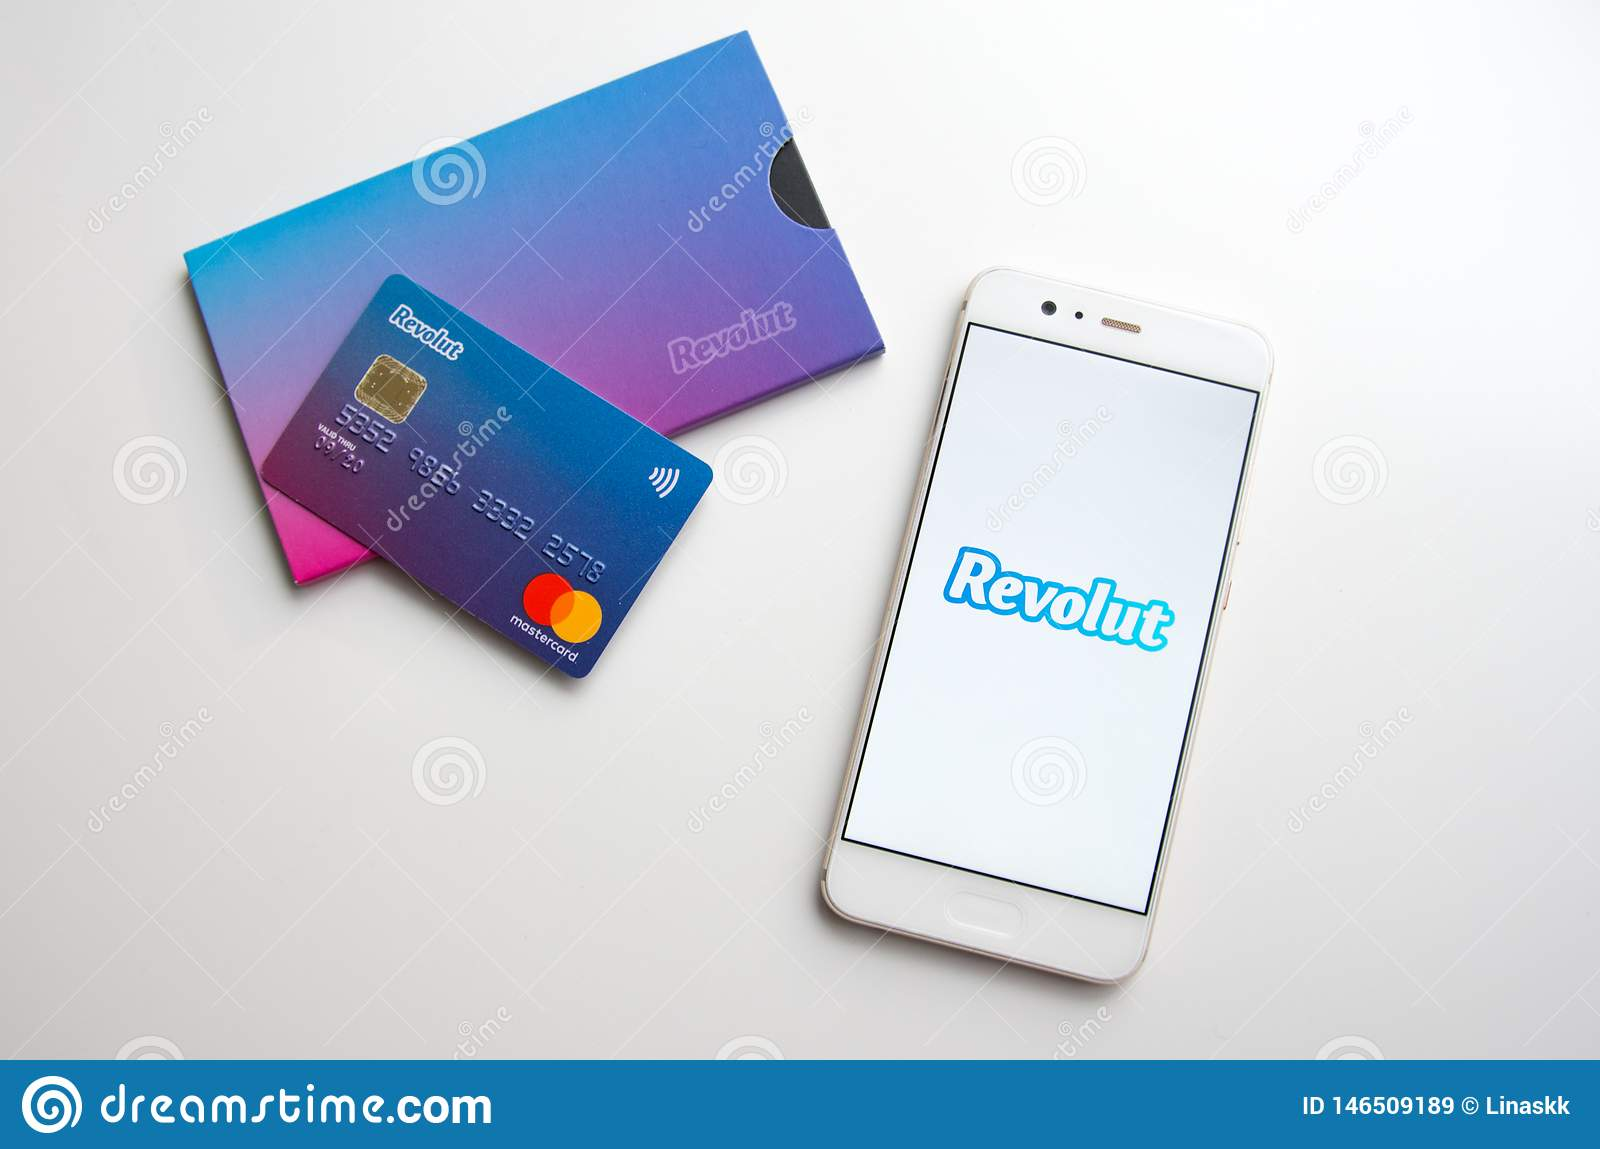 Revolut Mobile Digital Bank Cards And Phone With App